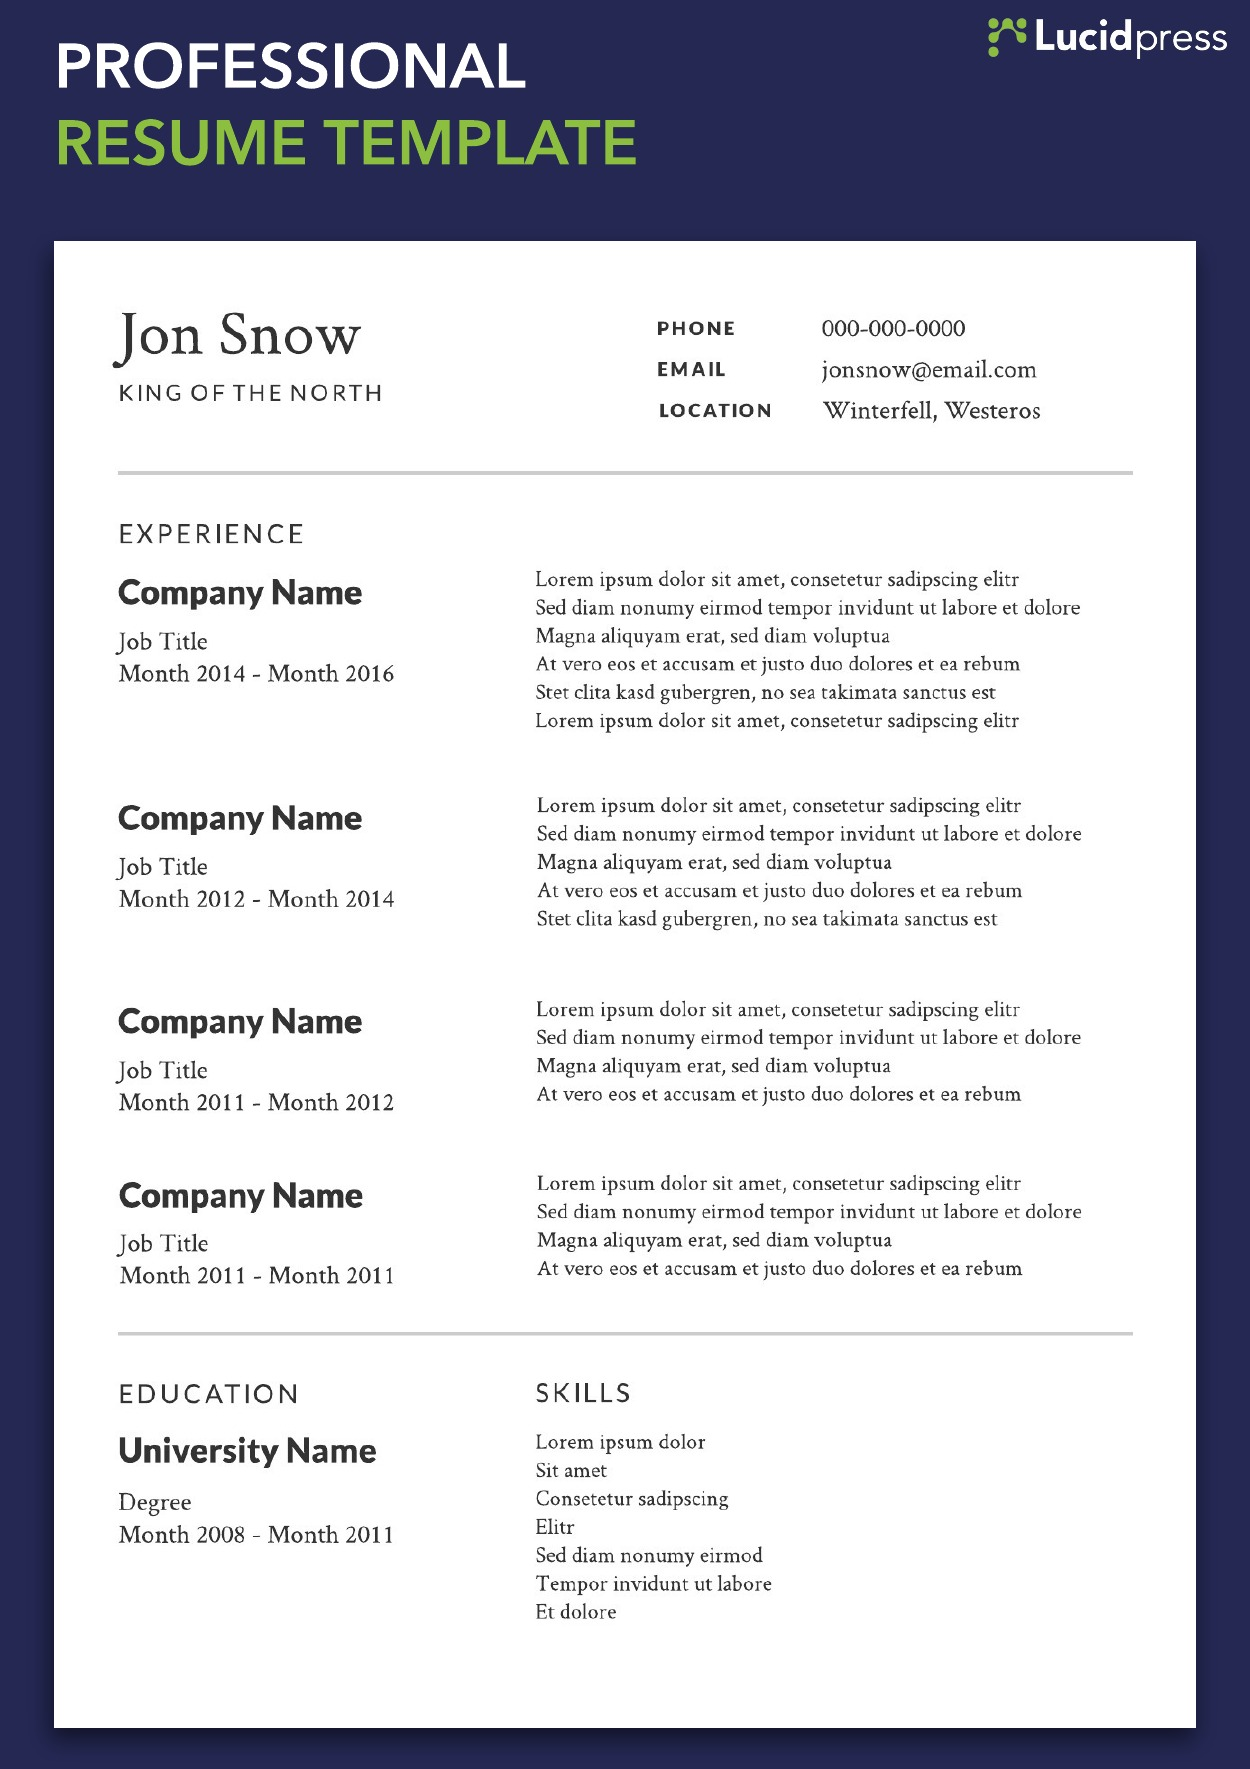 your resume formats guide for lucidpress free functional template professional Resume Free Functional Resume Template 2019